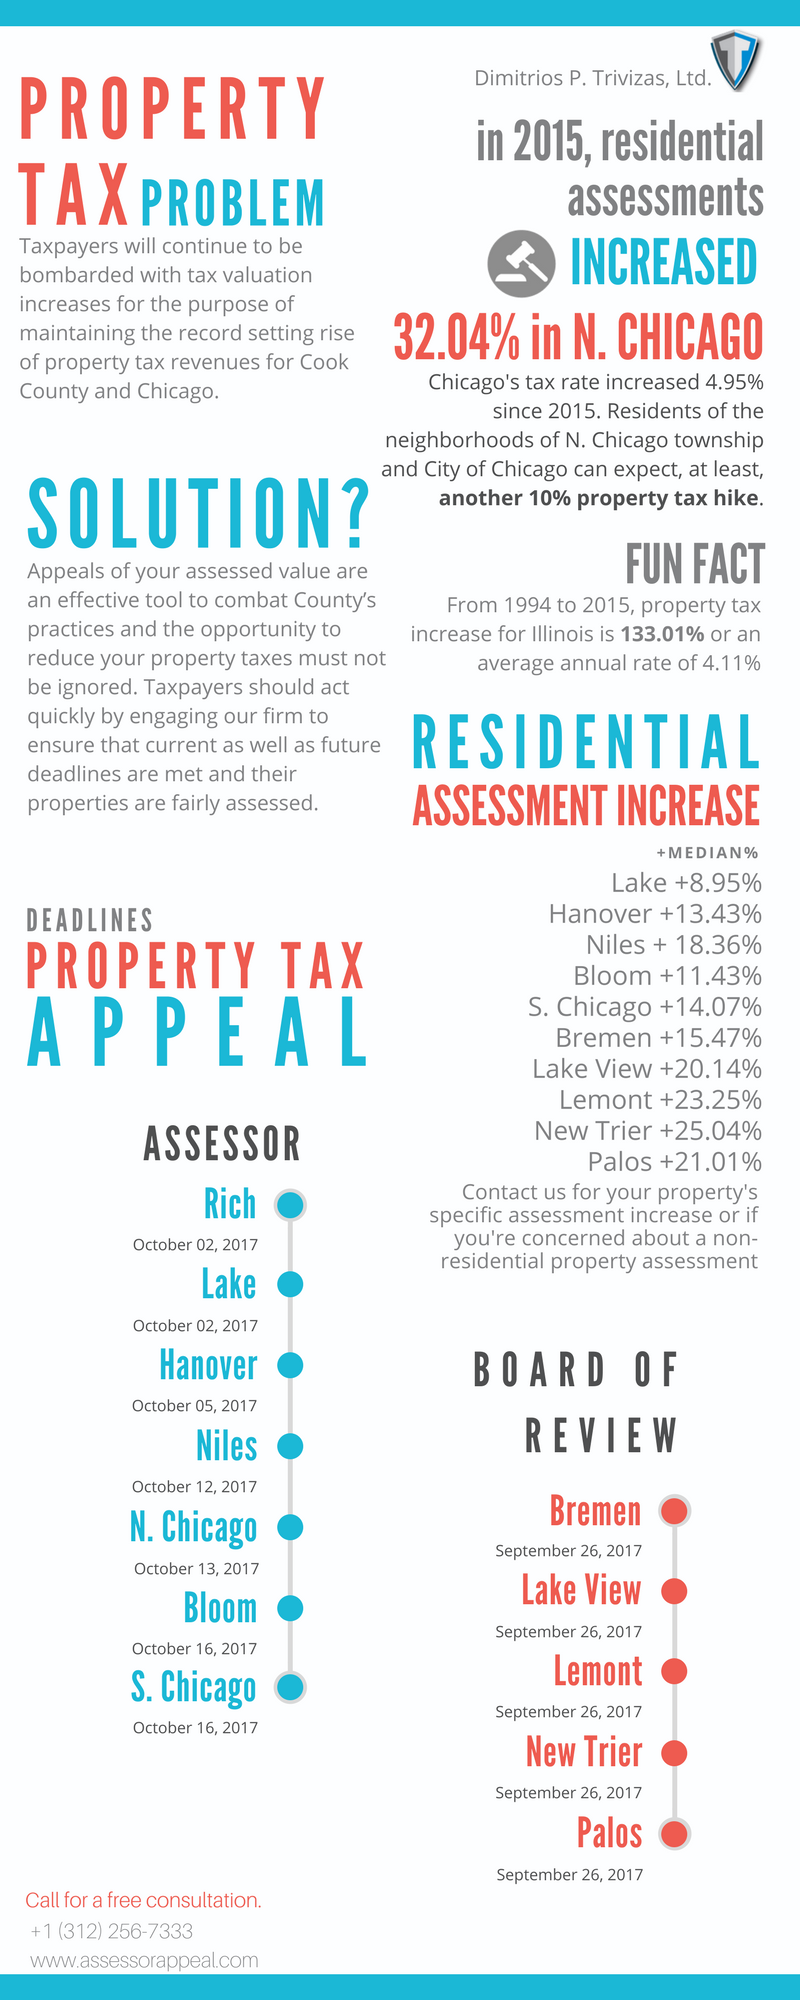 Cook County Property Tax Increase County Property Tax Appeal Deadlines Assess or Appeal